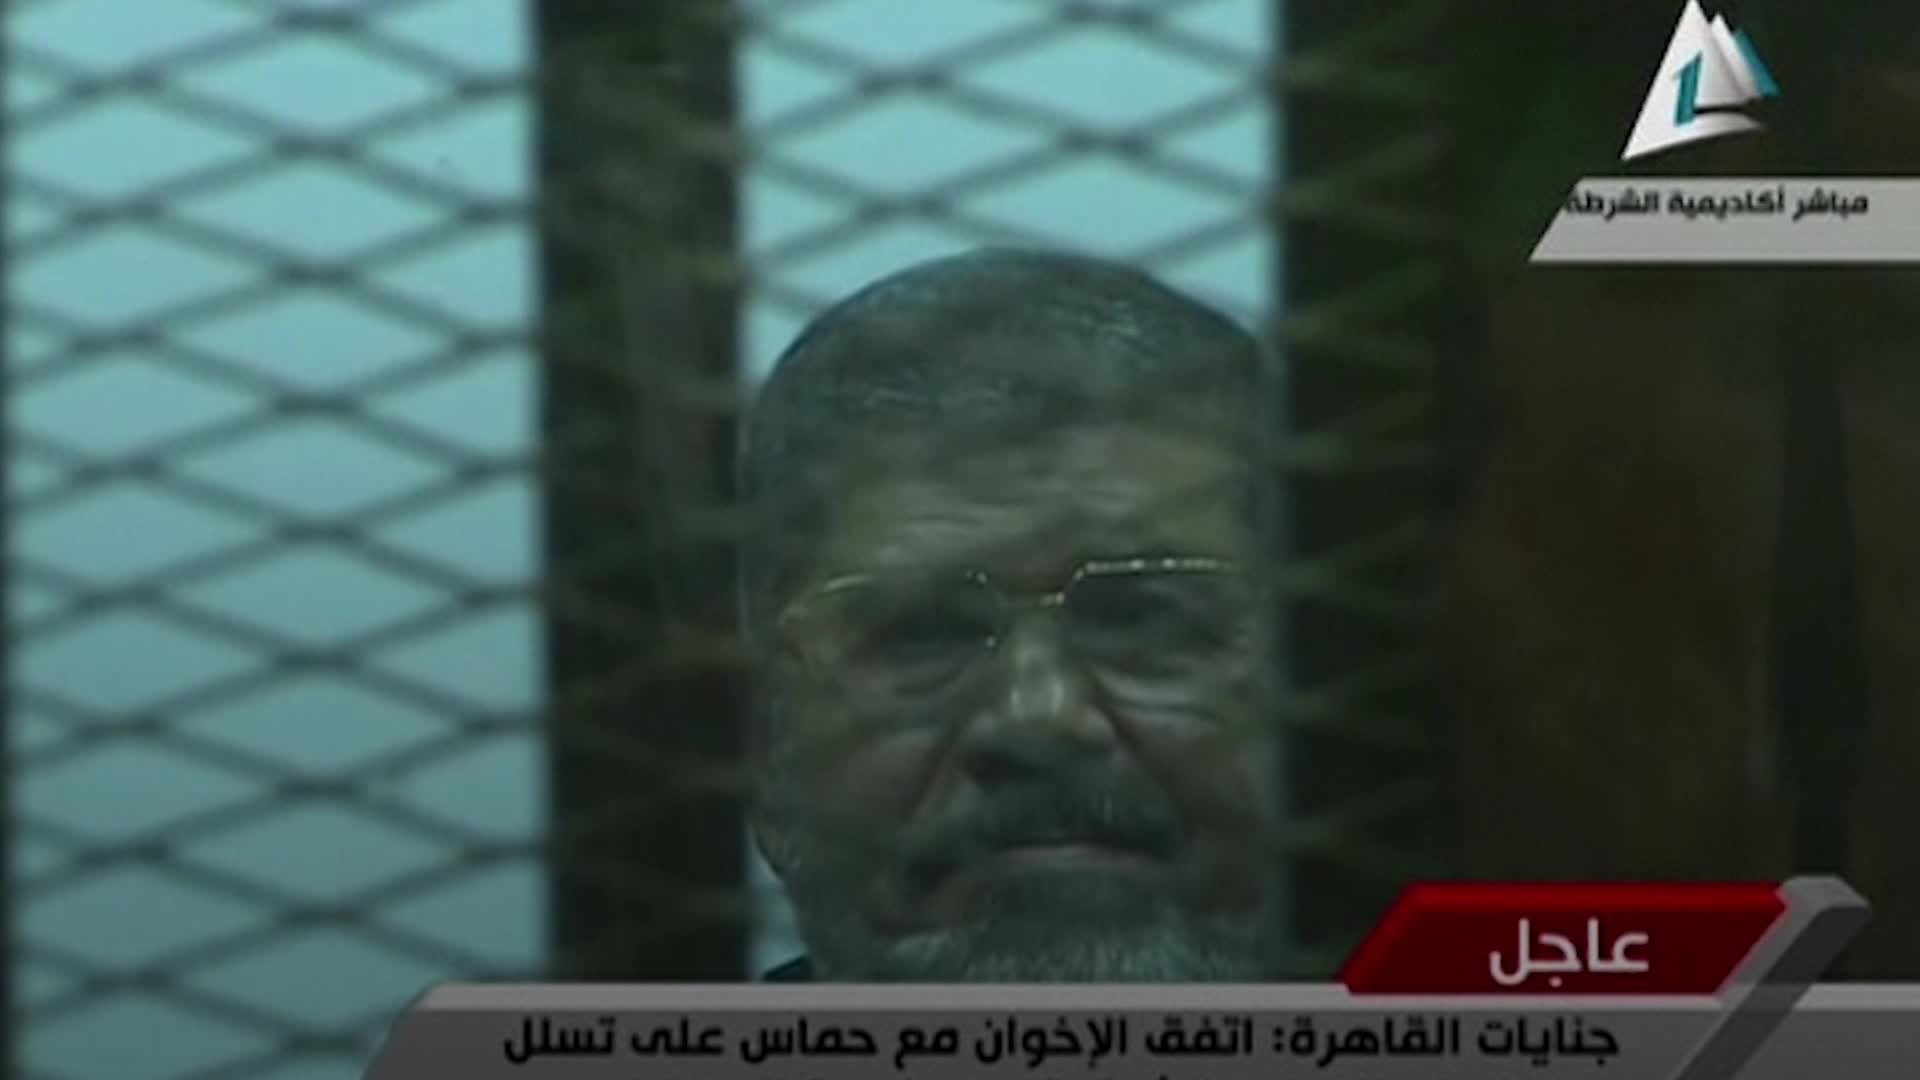 Mohammed Morsi, Egypt's Ousted President, Has Collapsed In Court And Died